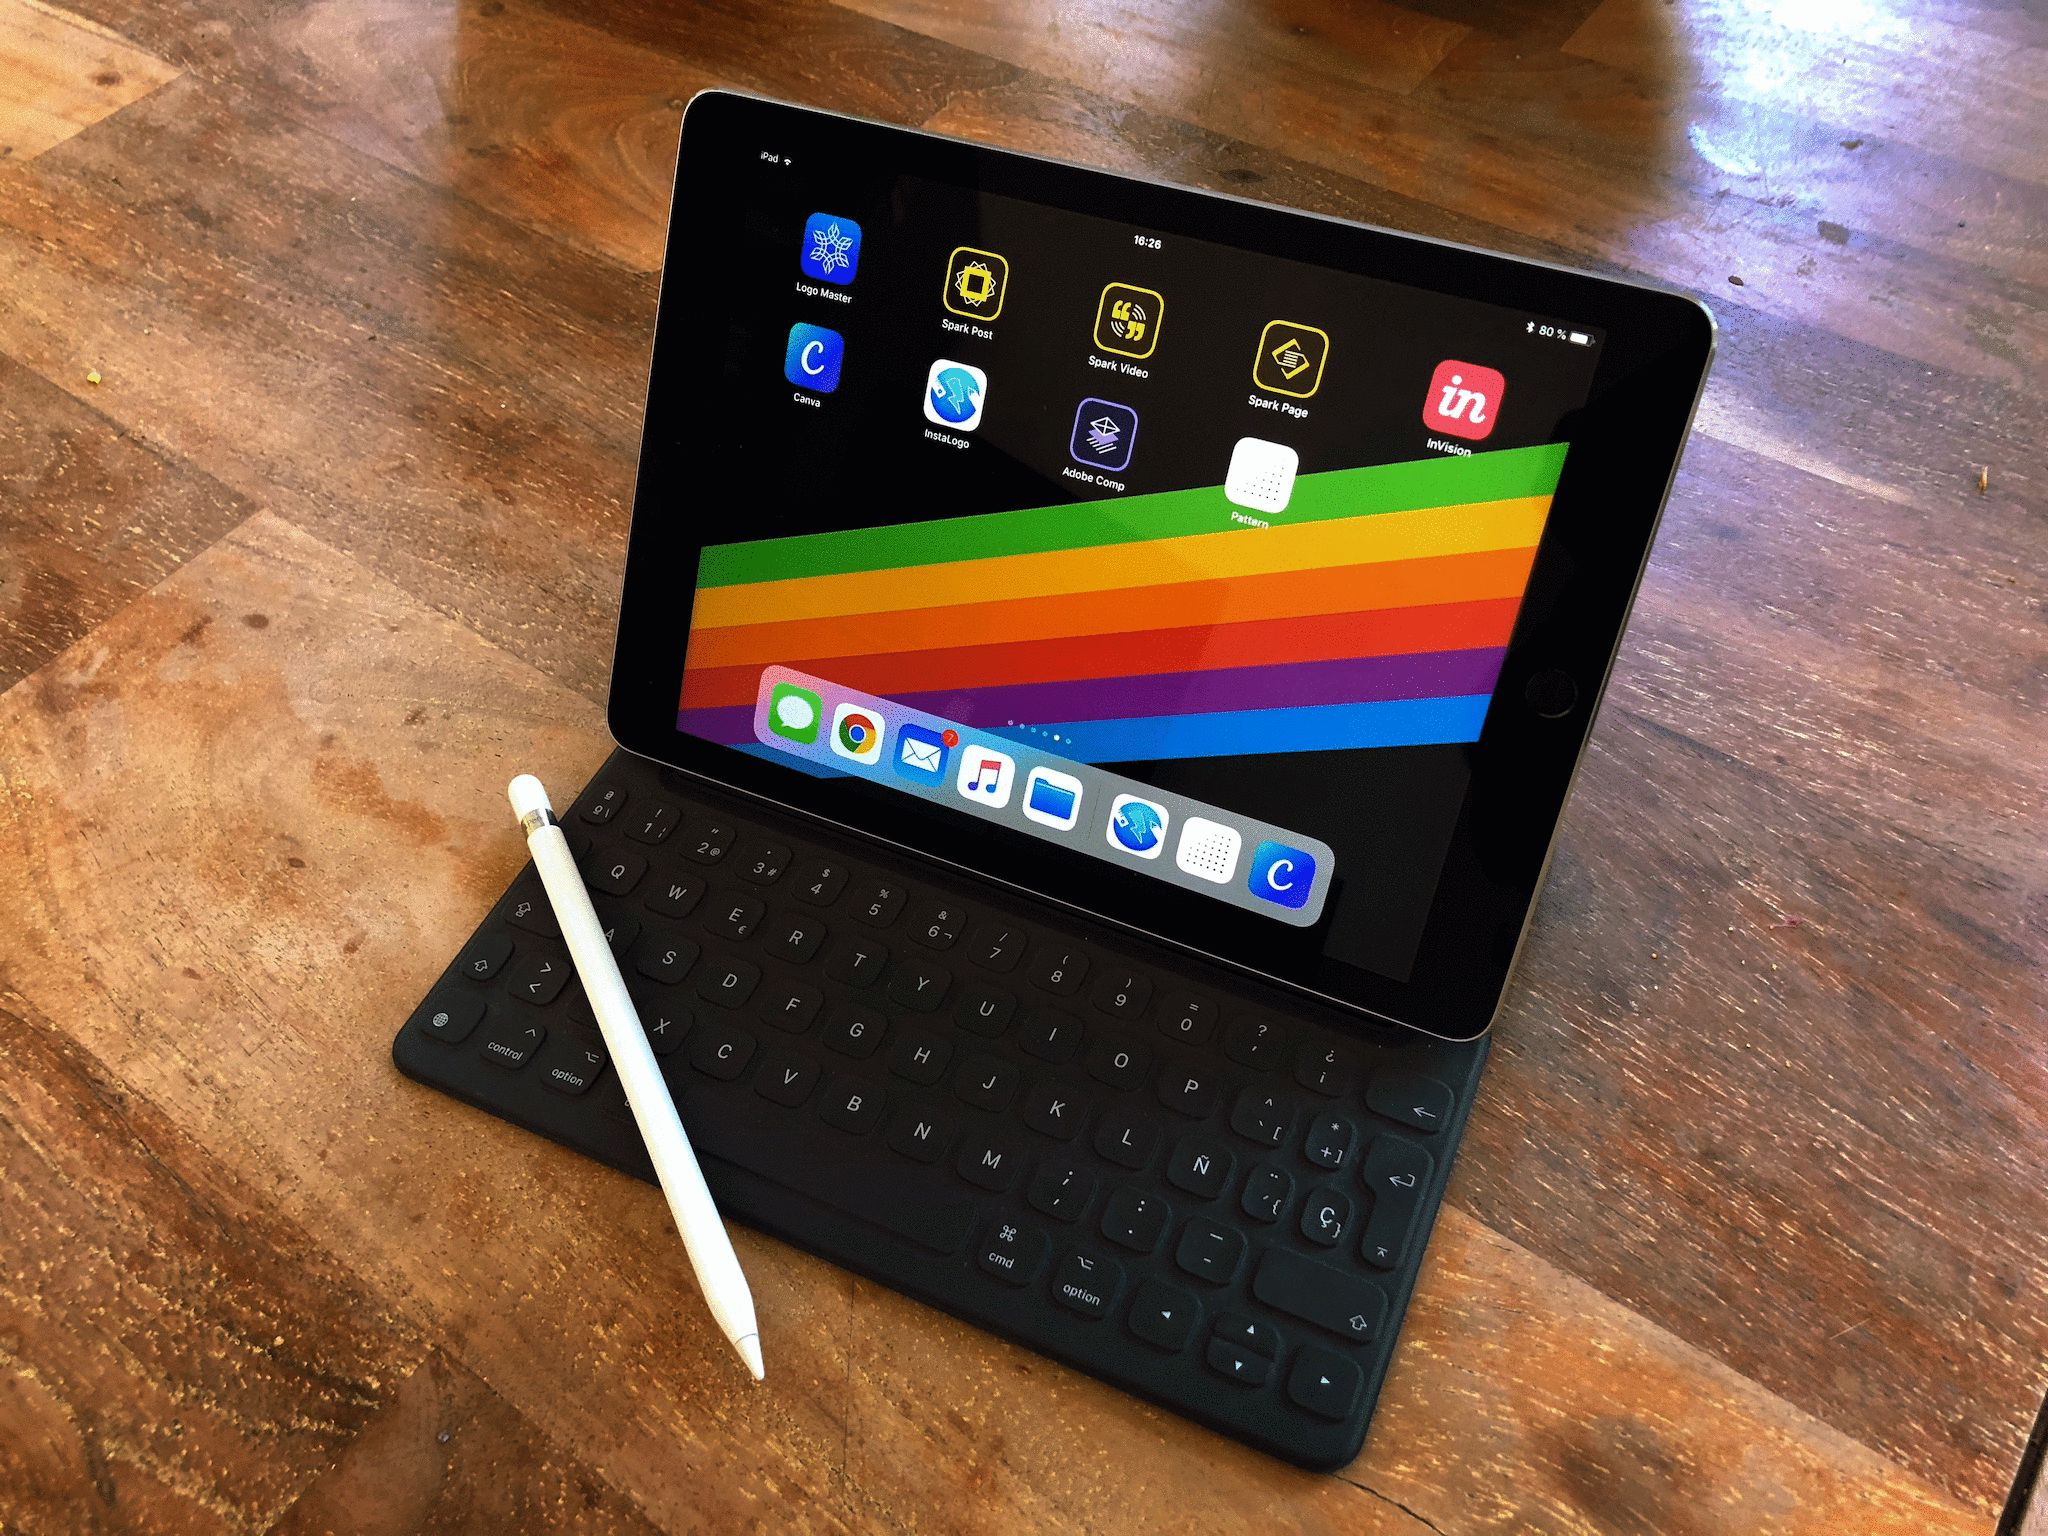 Working on an iPad Pro for developers